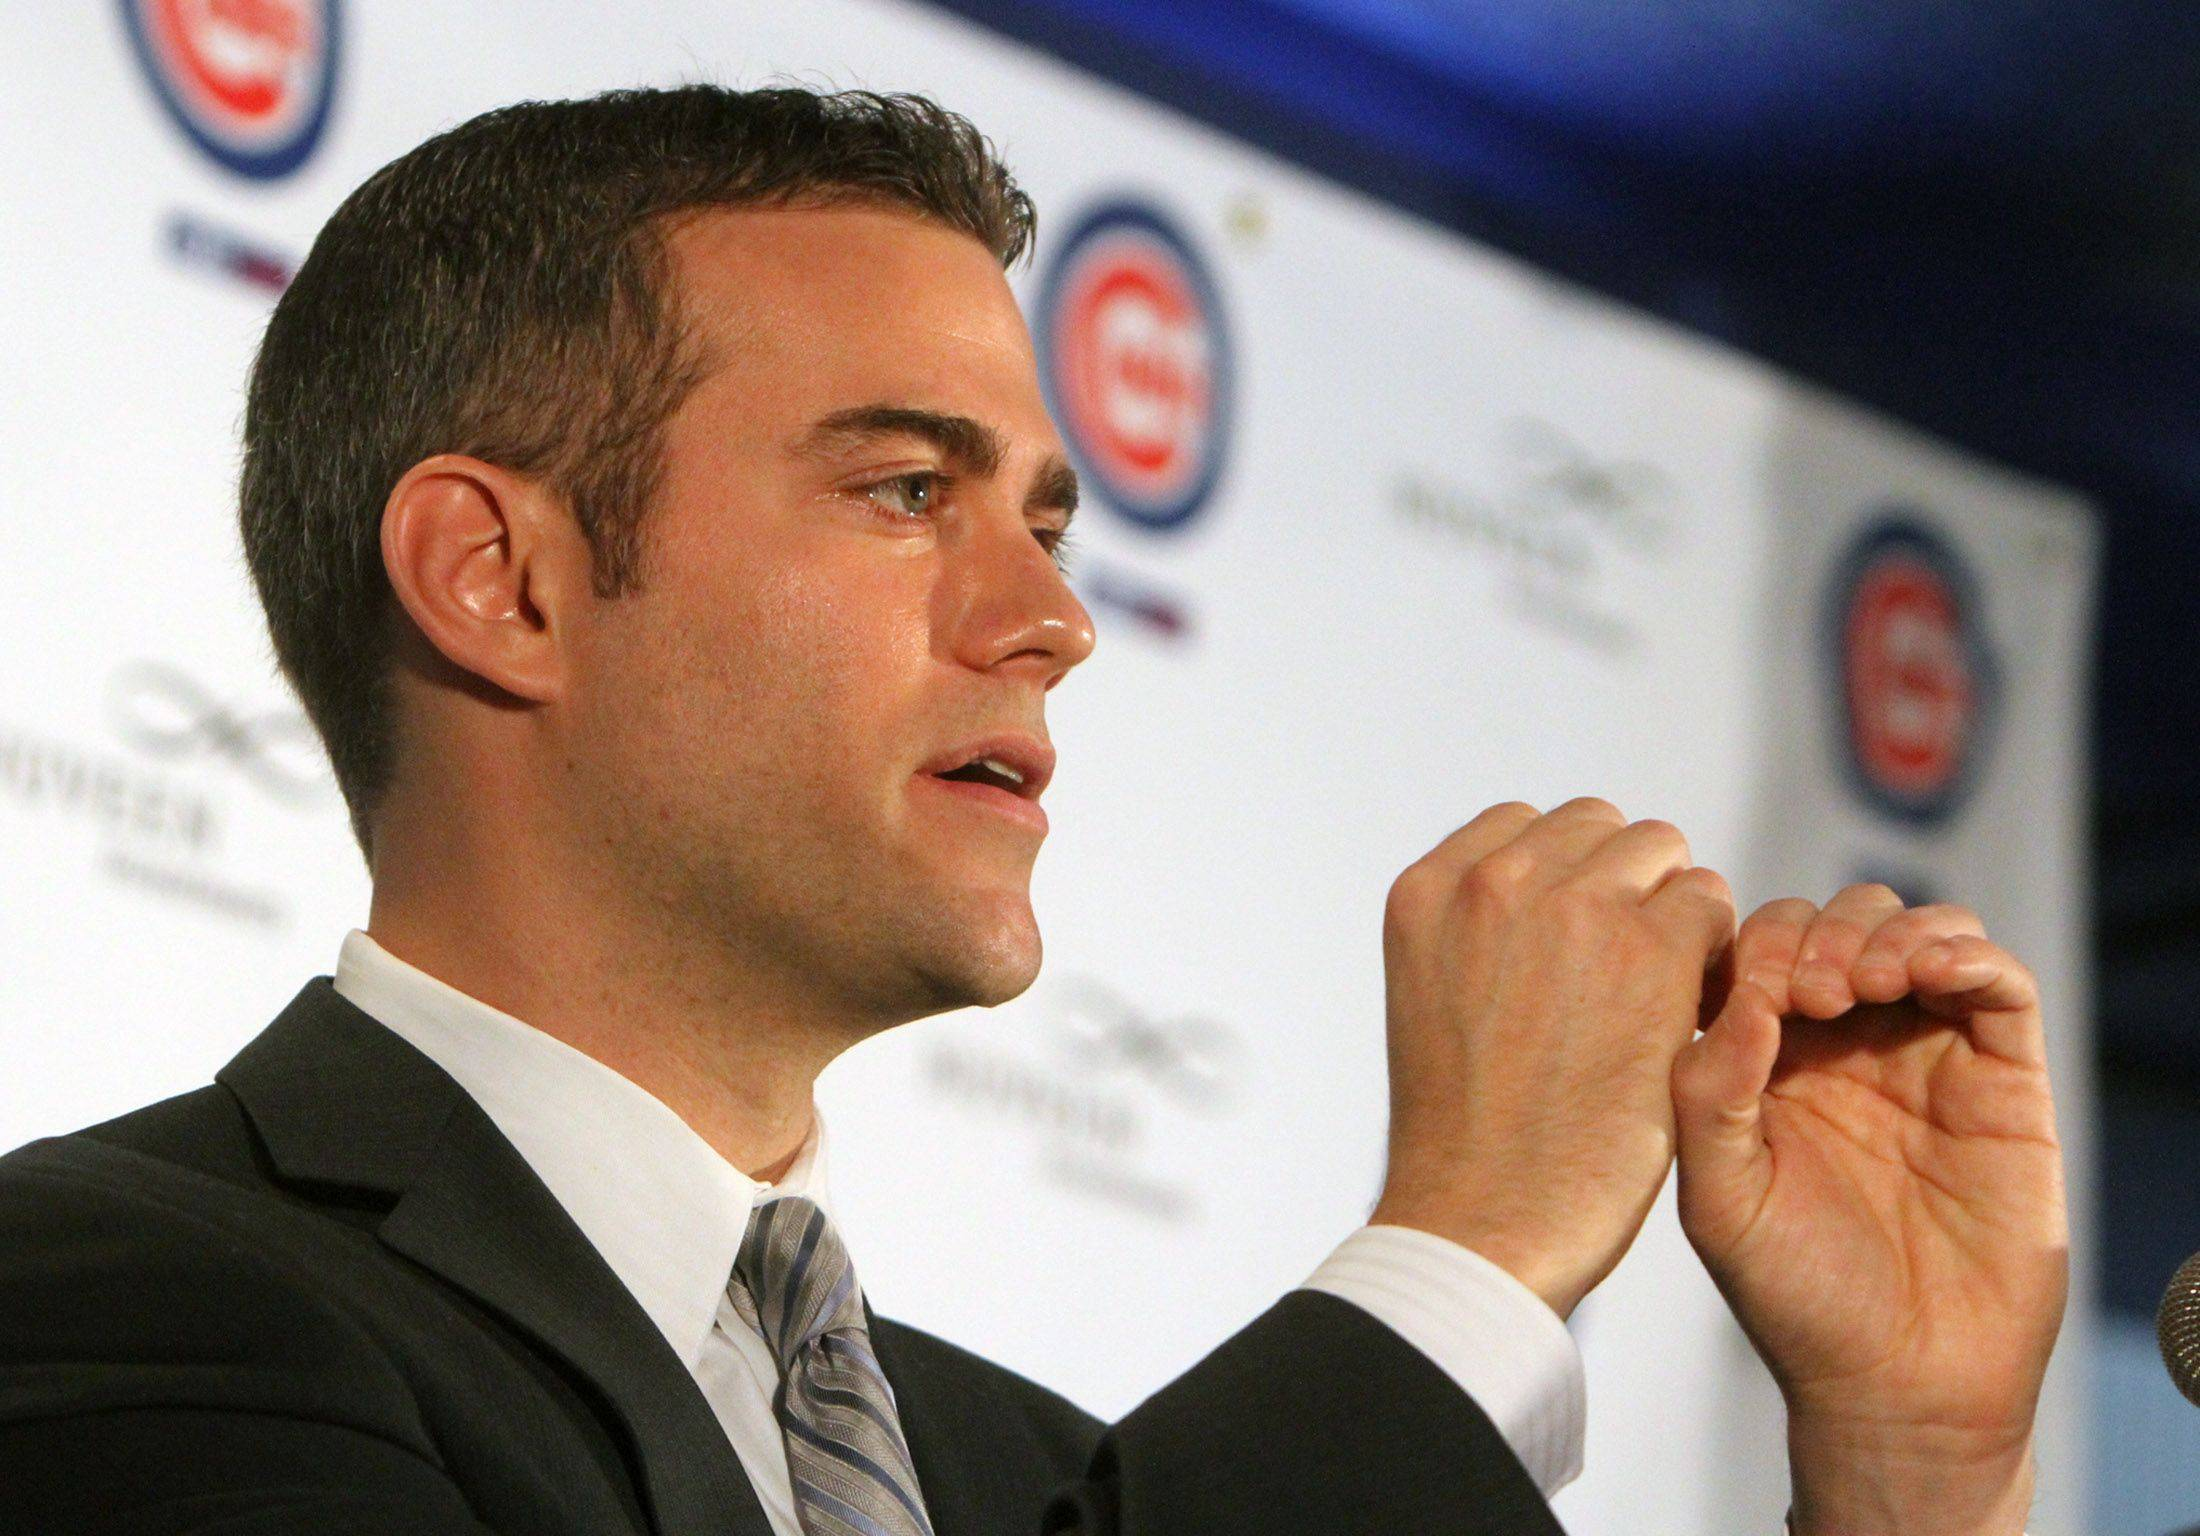 Theo Epstein brings a new direction to the Cubs as the team's new president of baseball operations, but the Cubs faced other transformations under Dallas Green and Andy MacPhail that brought change but didn't produce a World Series team.